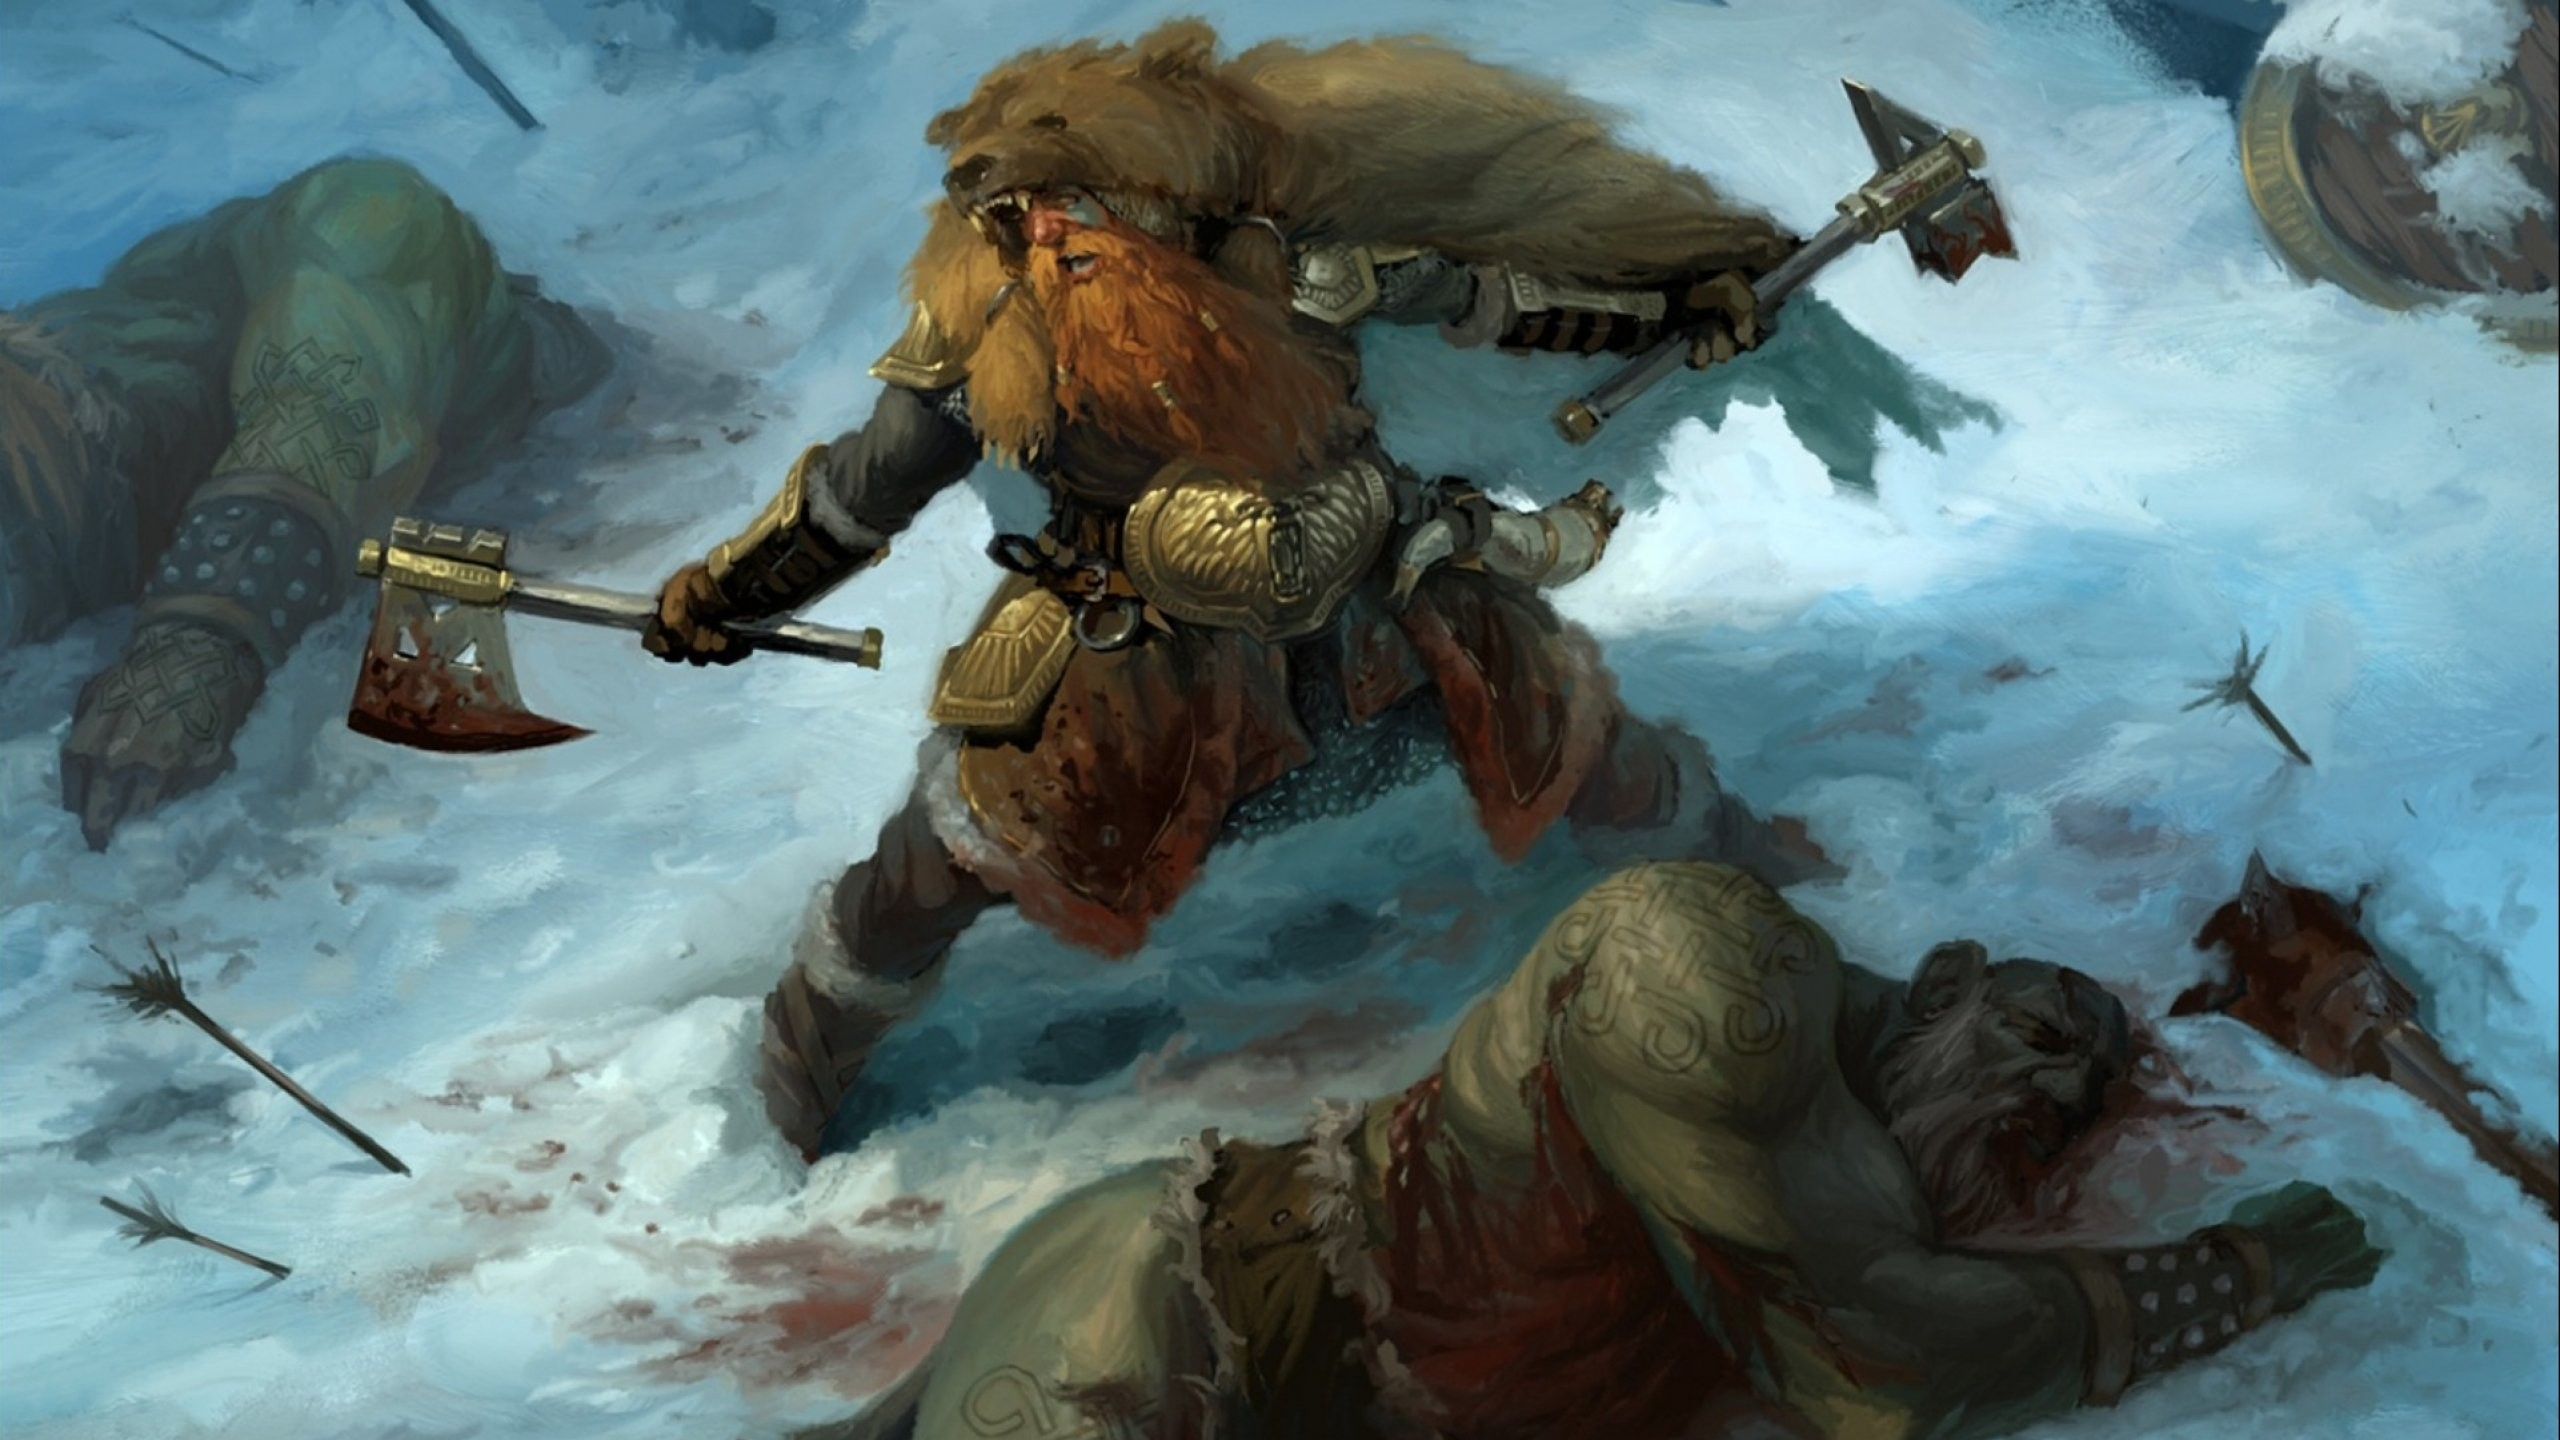 Res: 2560x1440, Dwarf Wallpapers 6 - 2560 X 1440